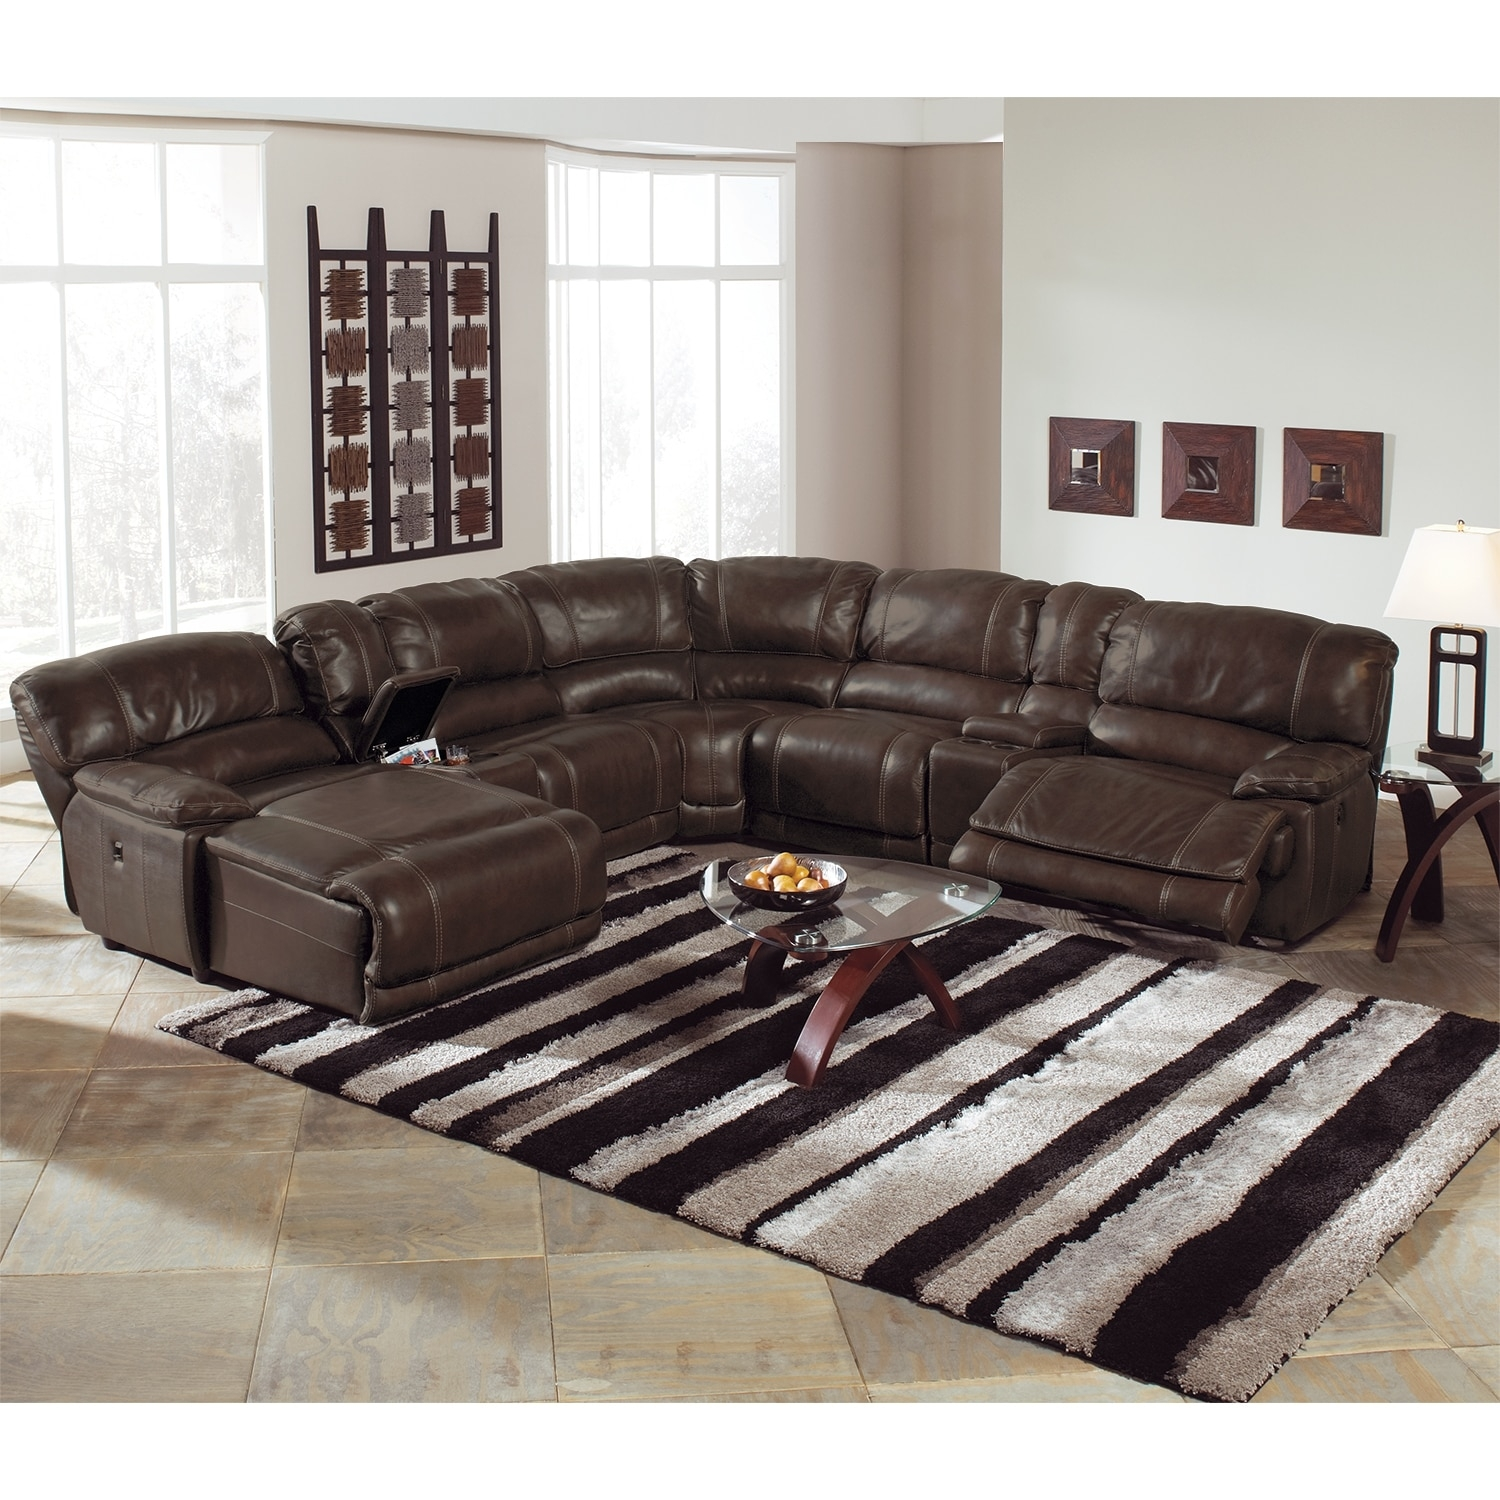 15 Best Ideas 6 Piece Leather Sectional Sofa